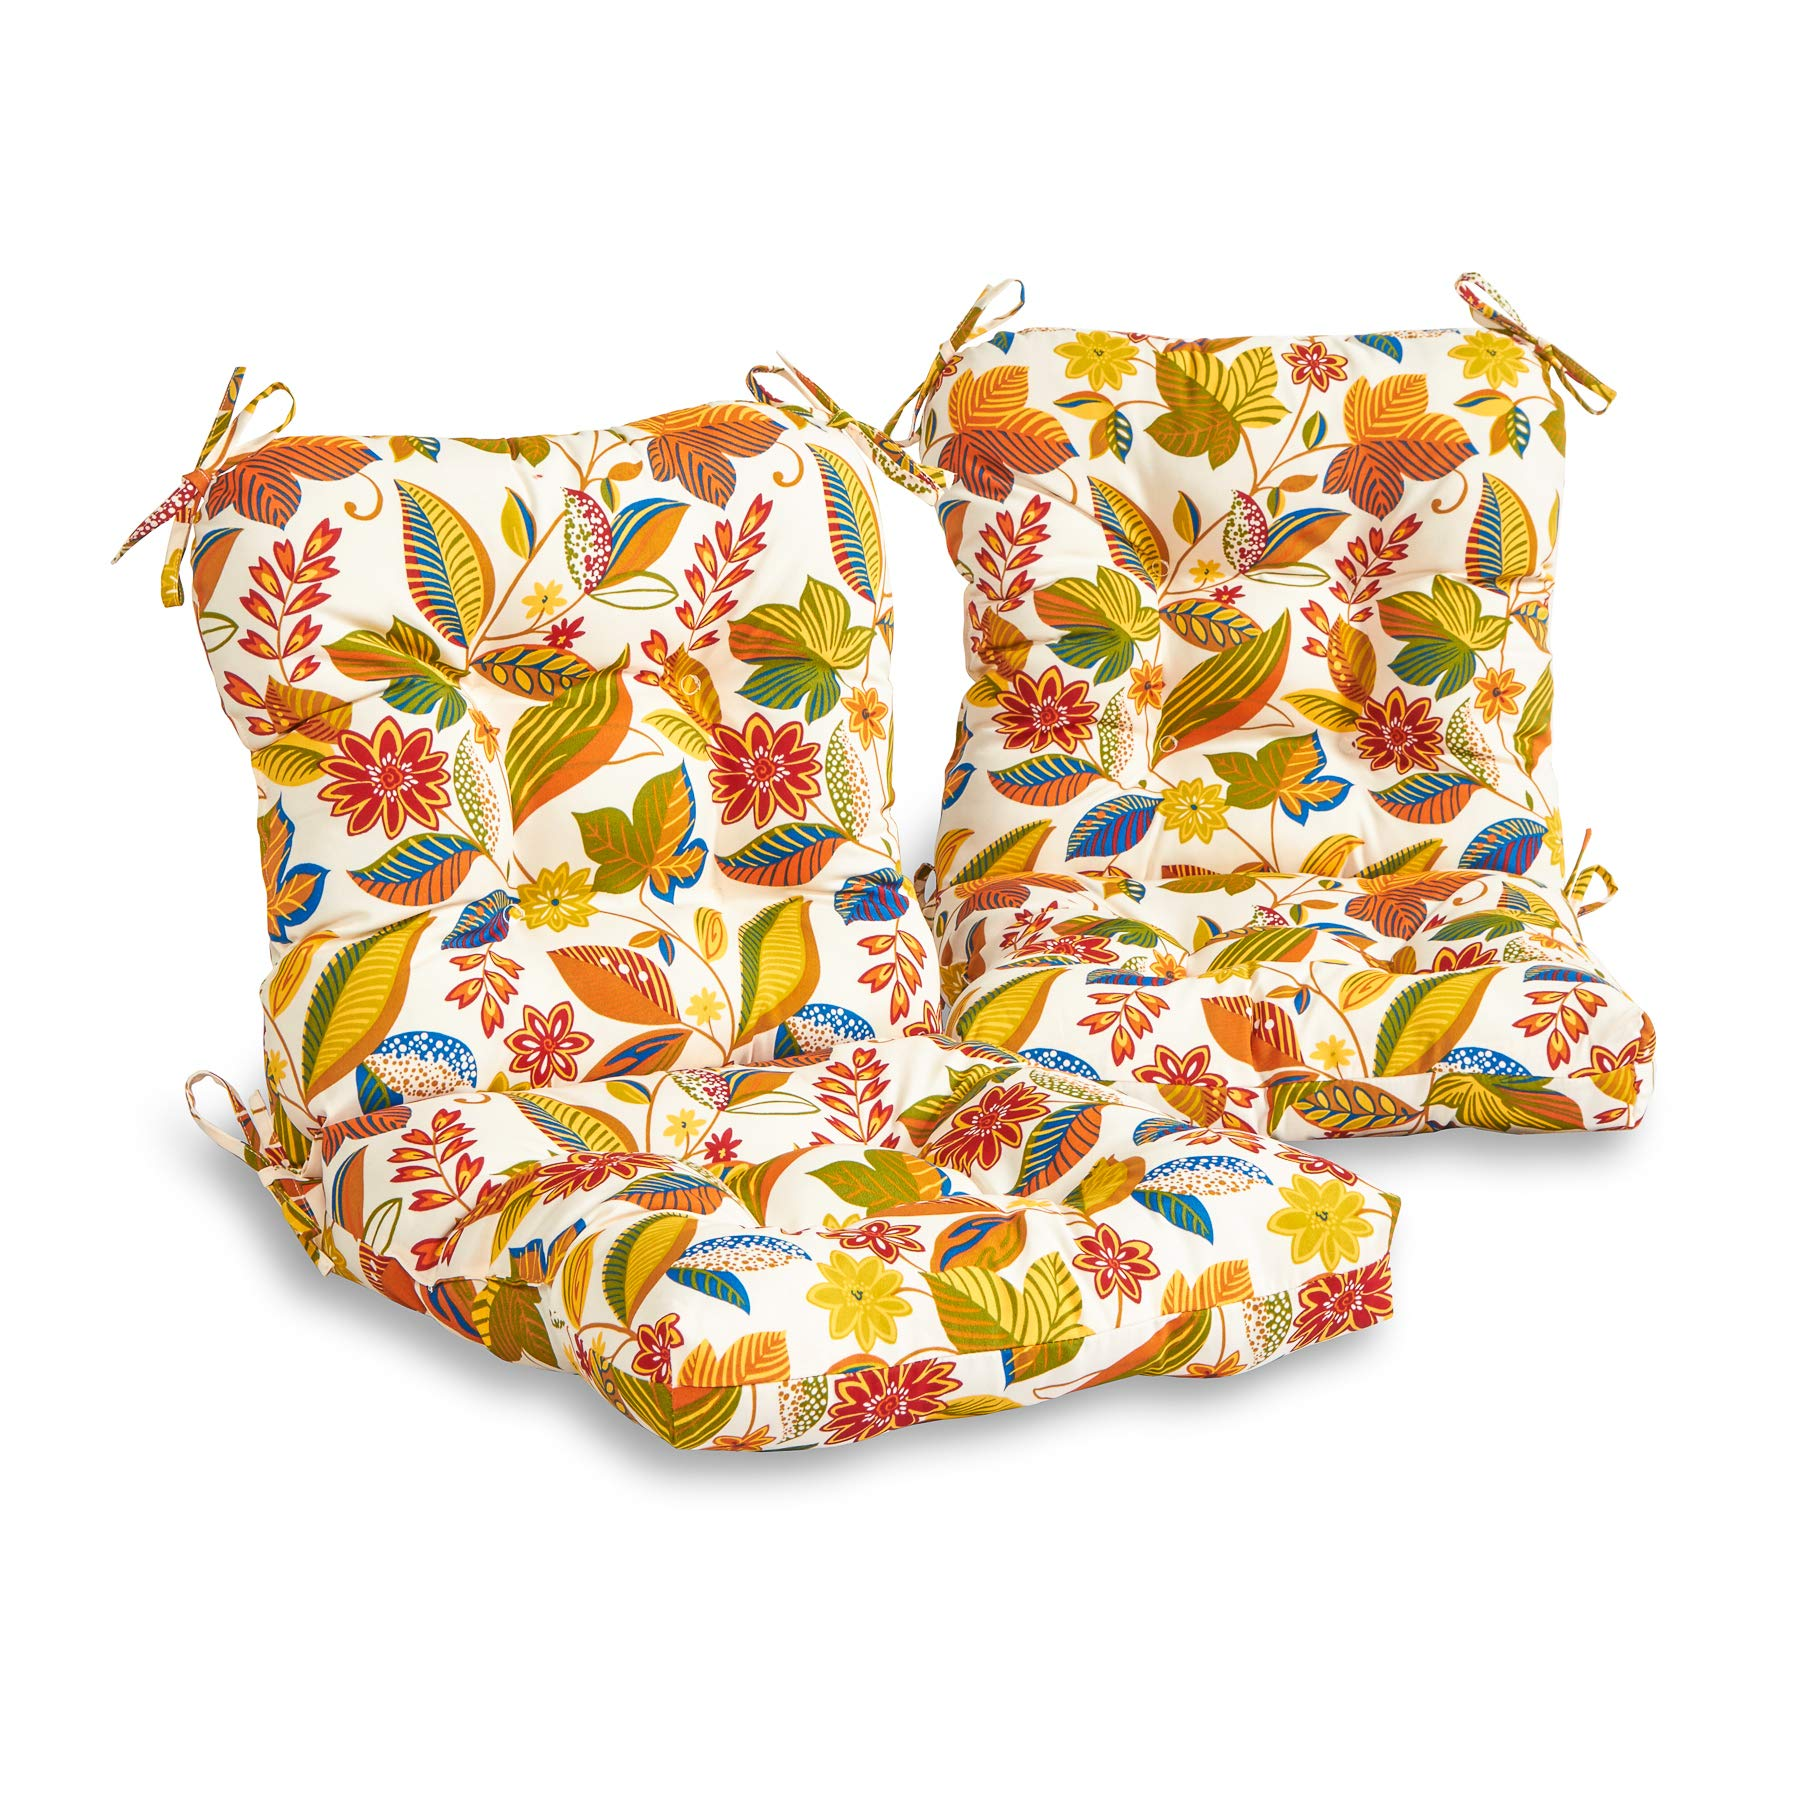 South Pine Porch AM6815S2-SKYWORKS Esprit Floral Outdoor Seat/Back Chair Cushion, Set of 2